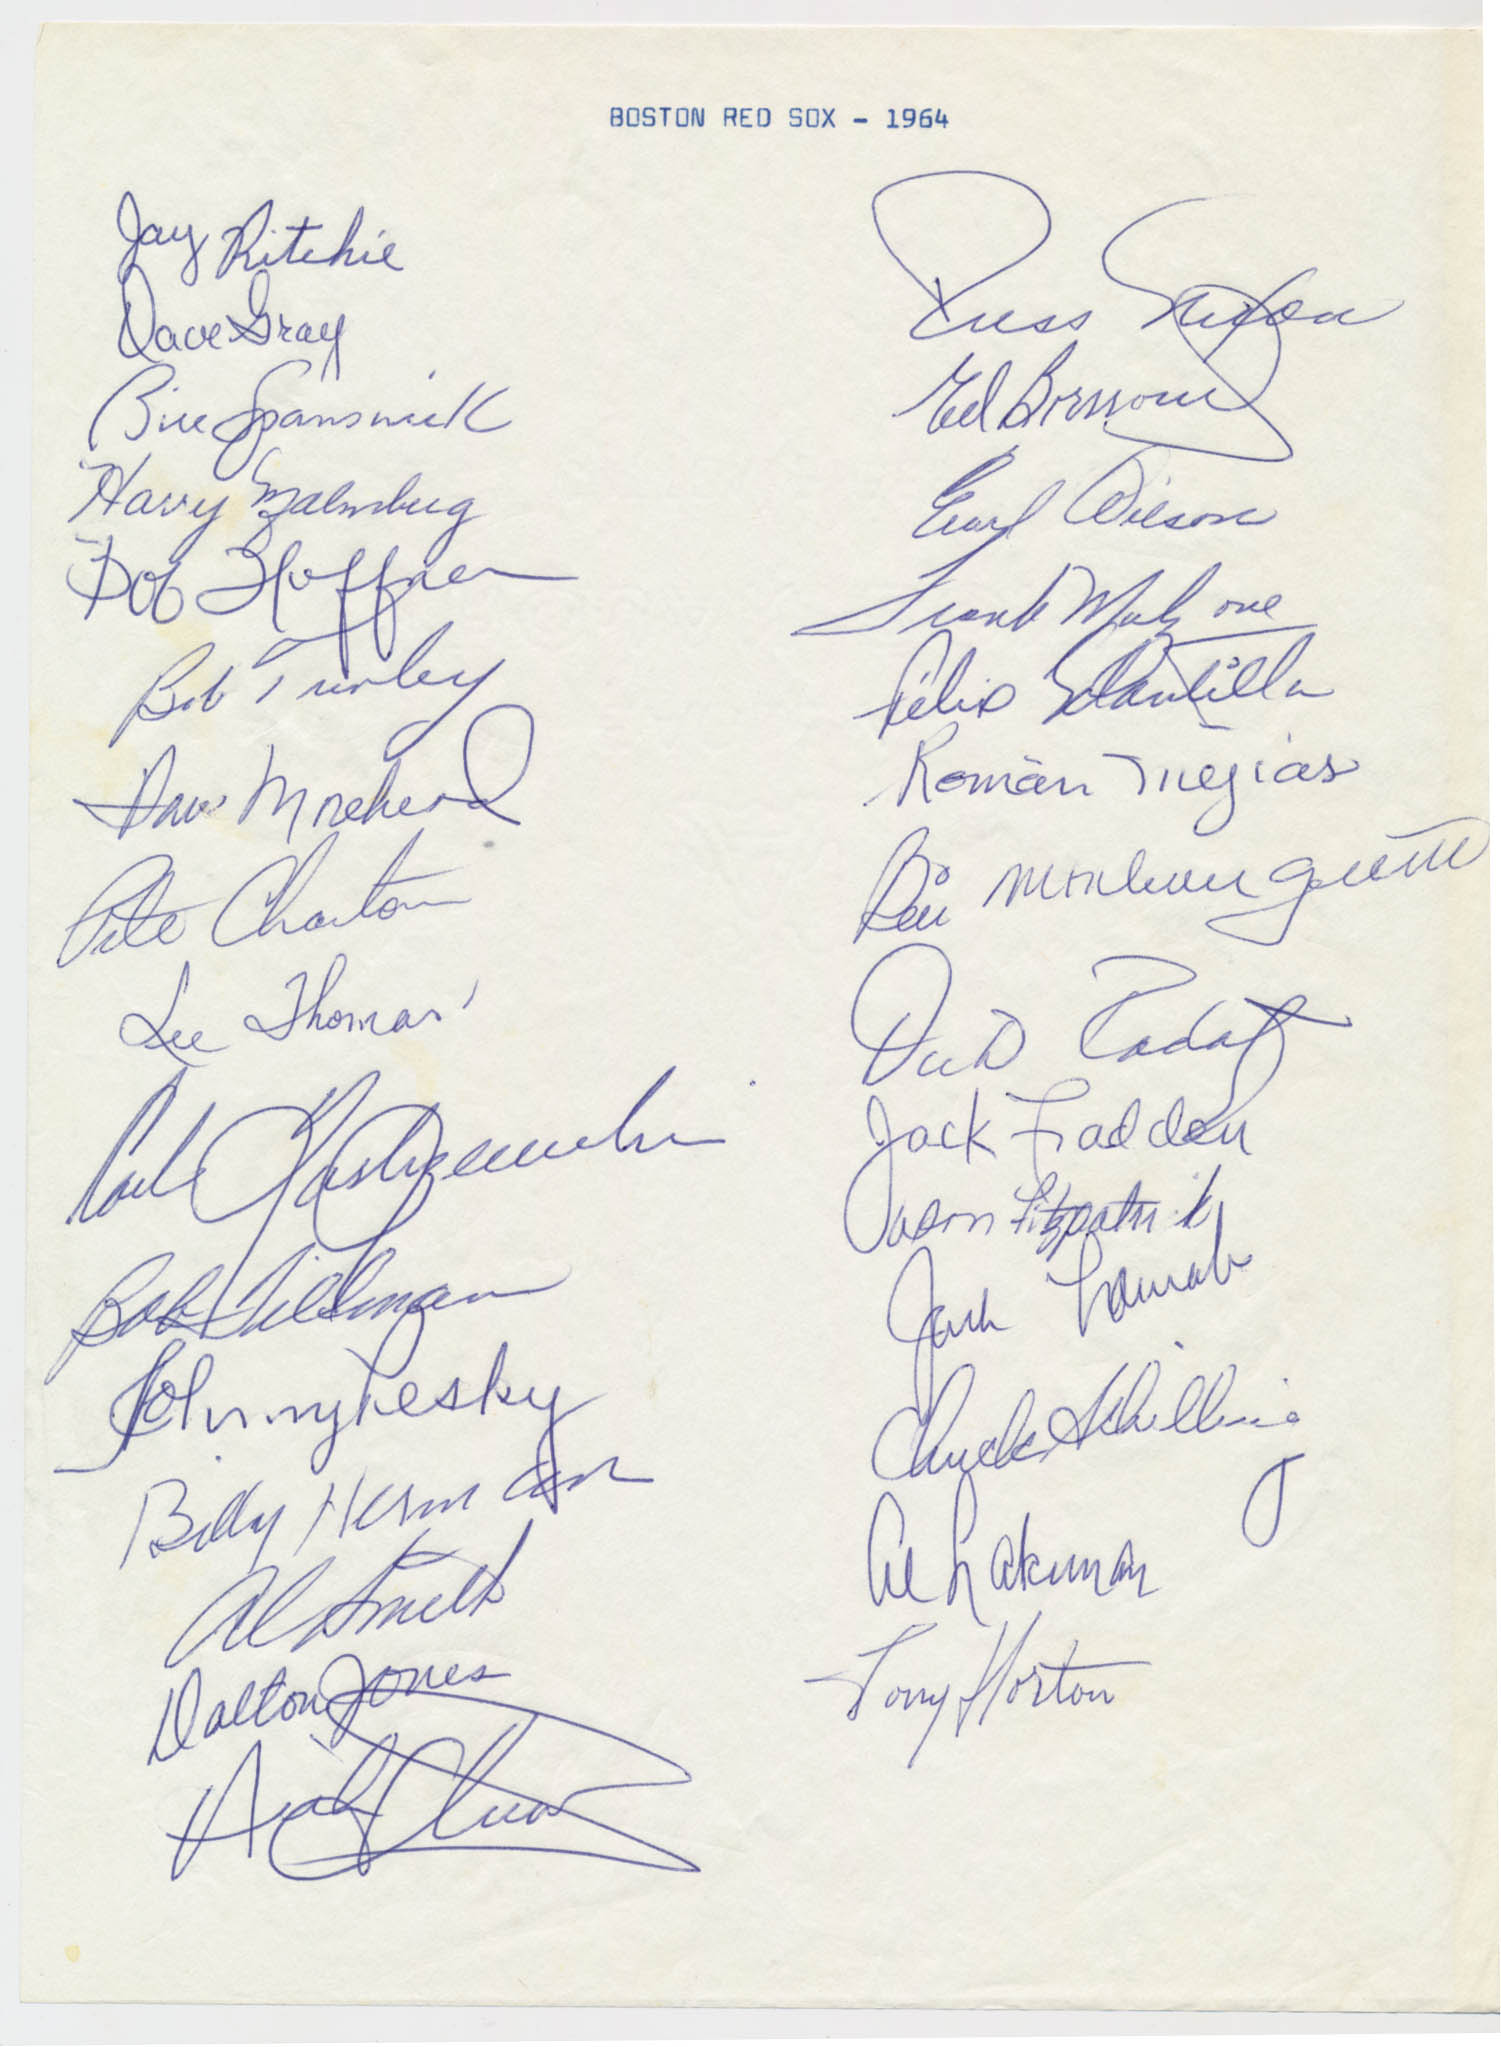 Team Sheet  1964 Red Sox (30 sigs) 9.5